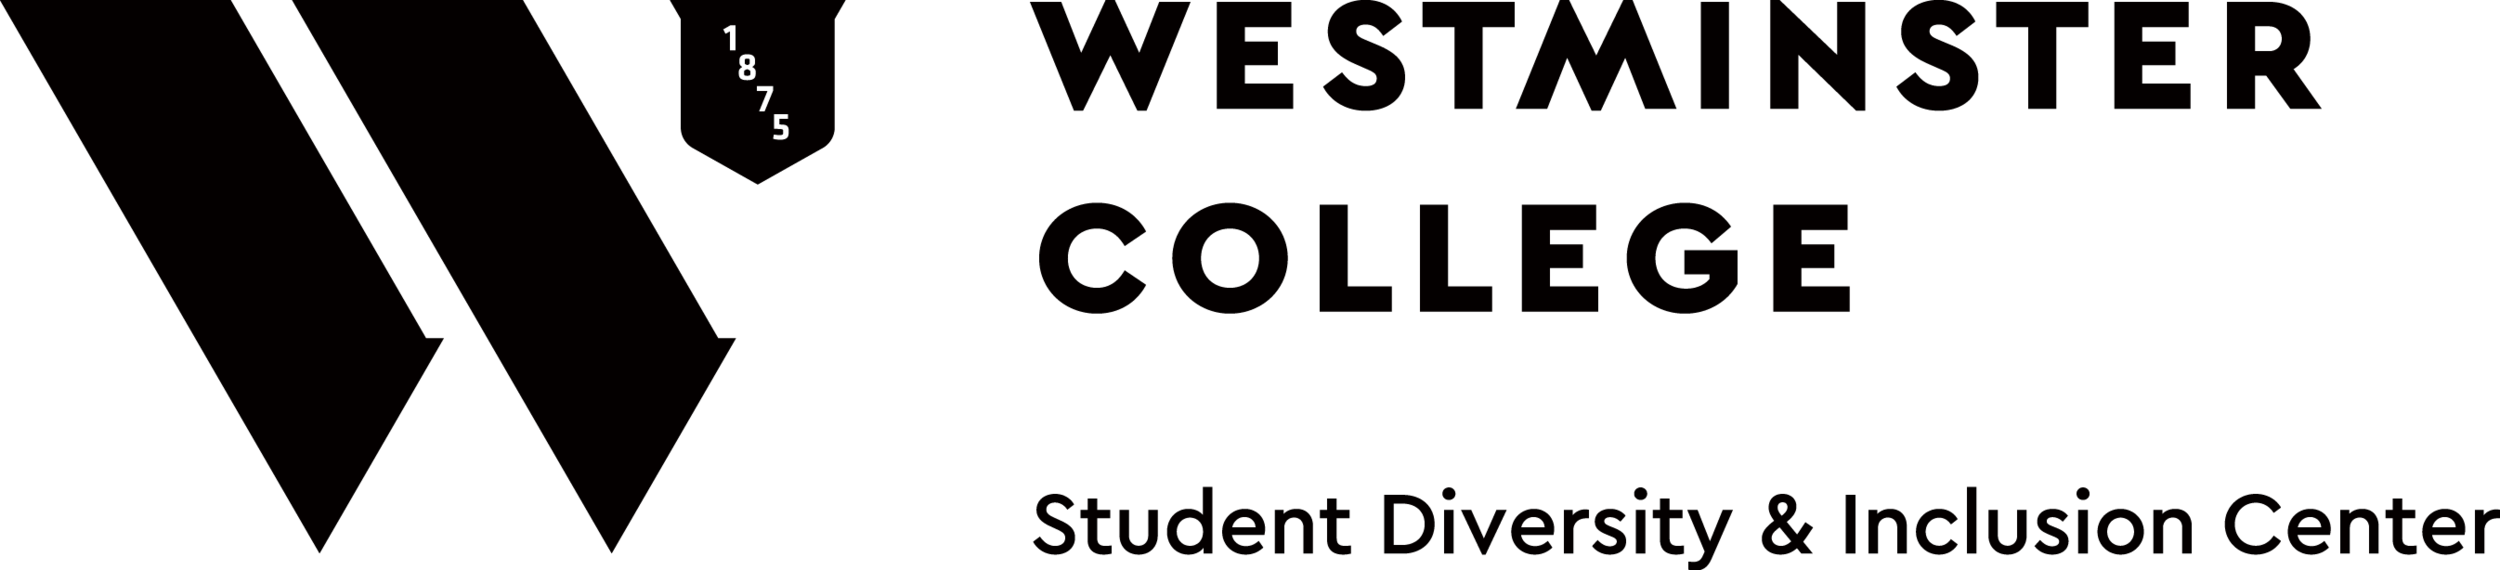 Student Diversity Inclusion Center_k (1).png